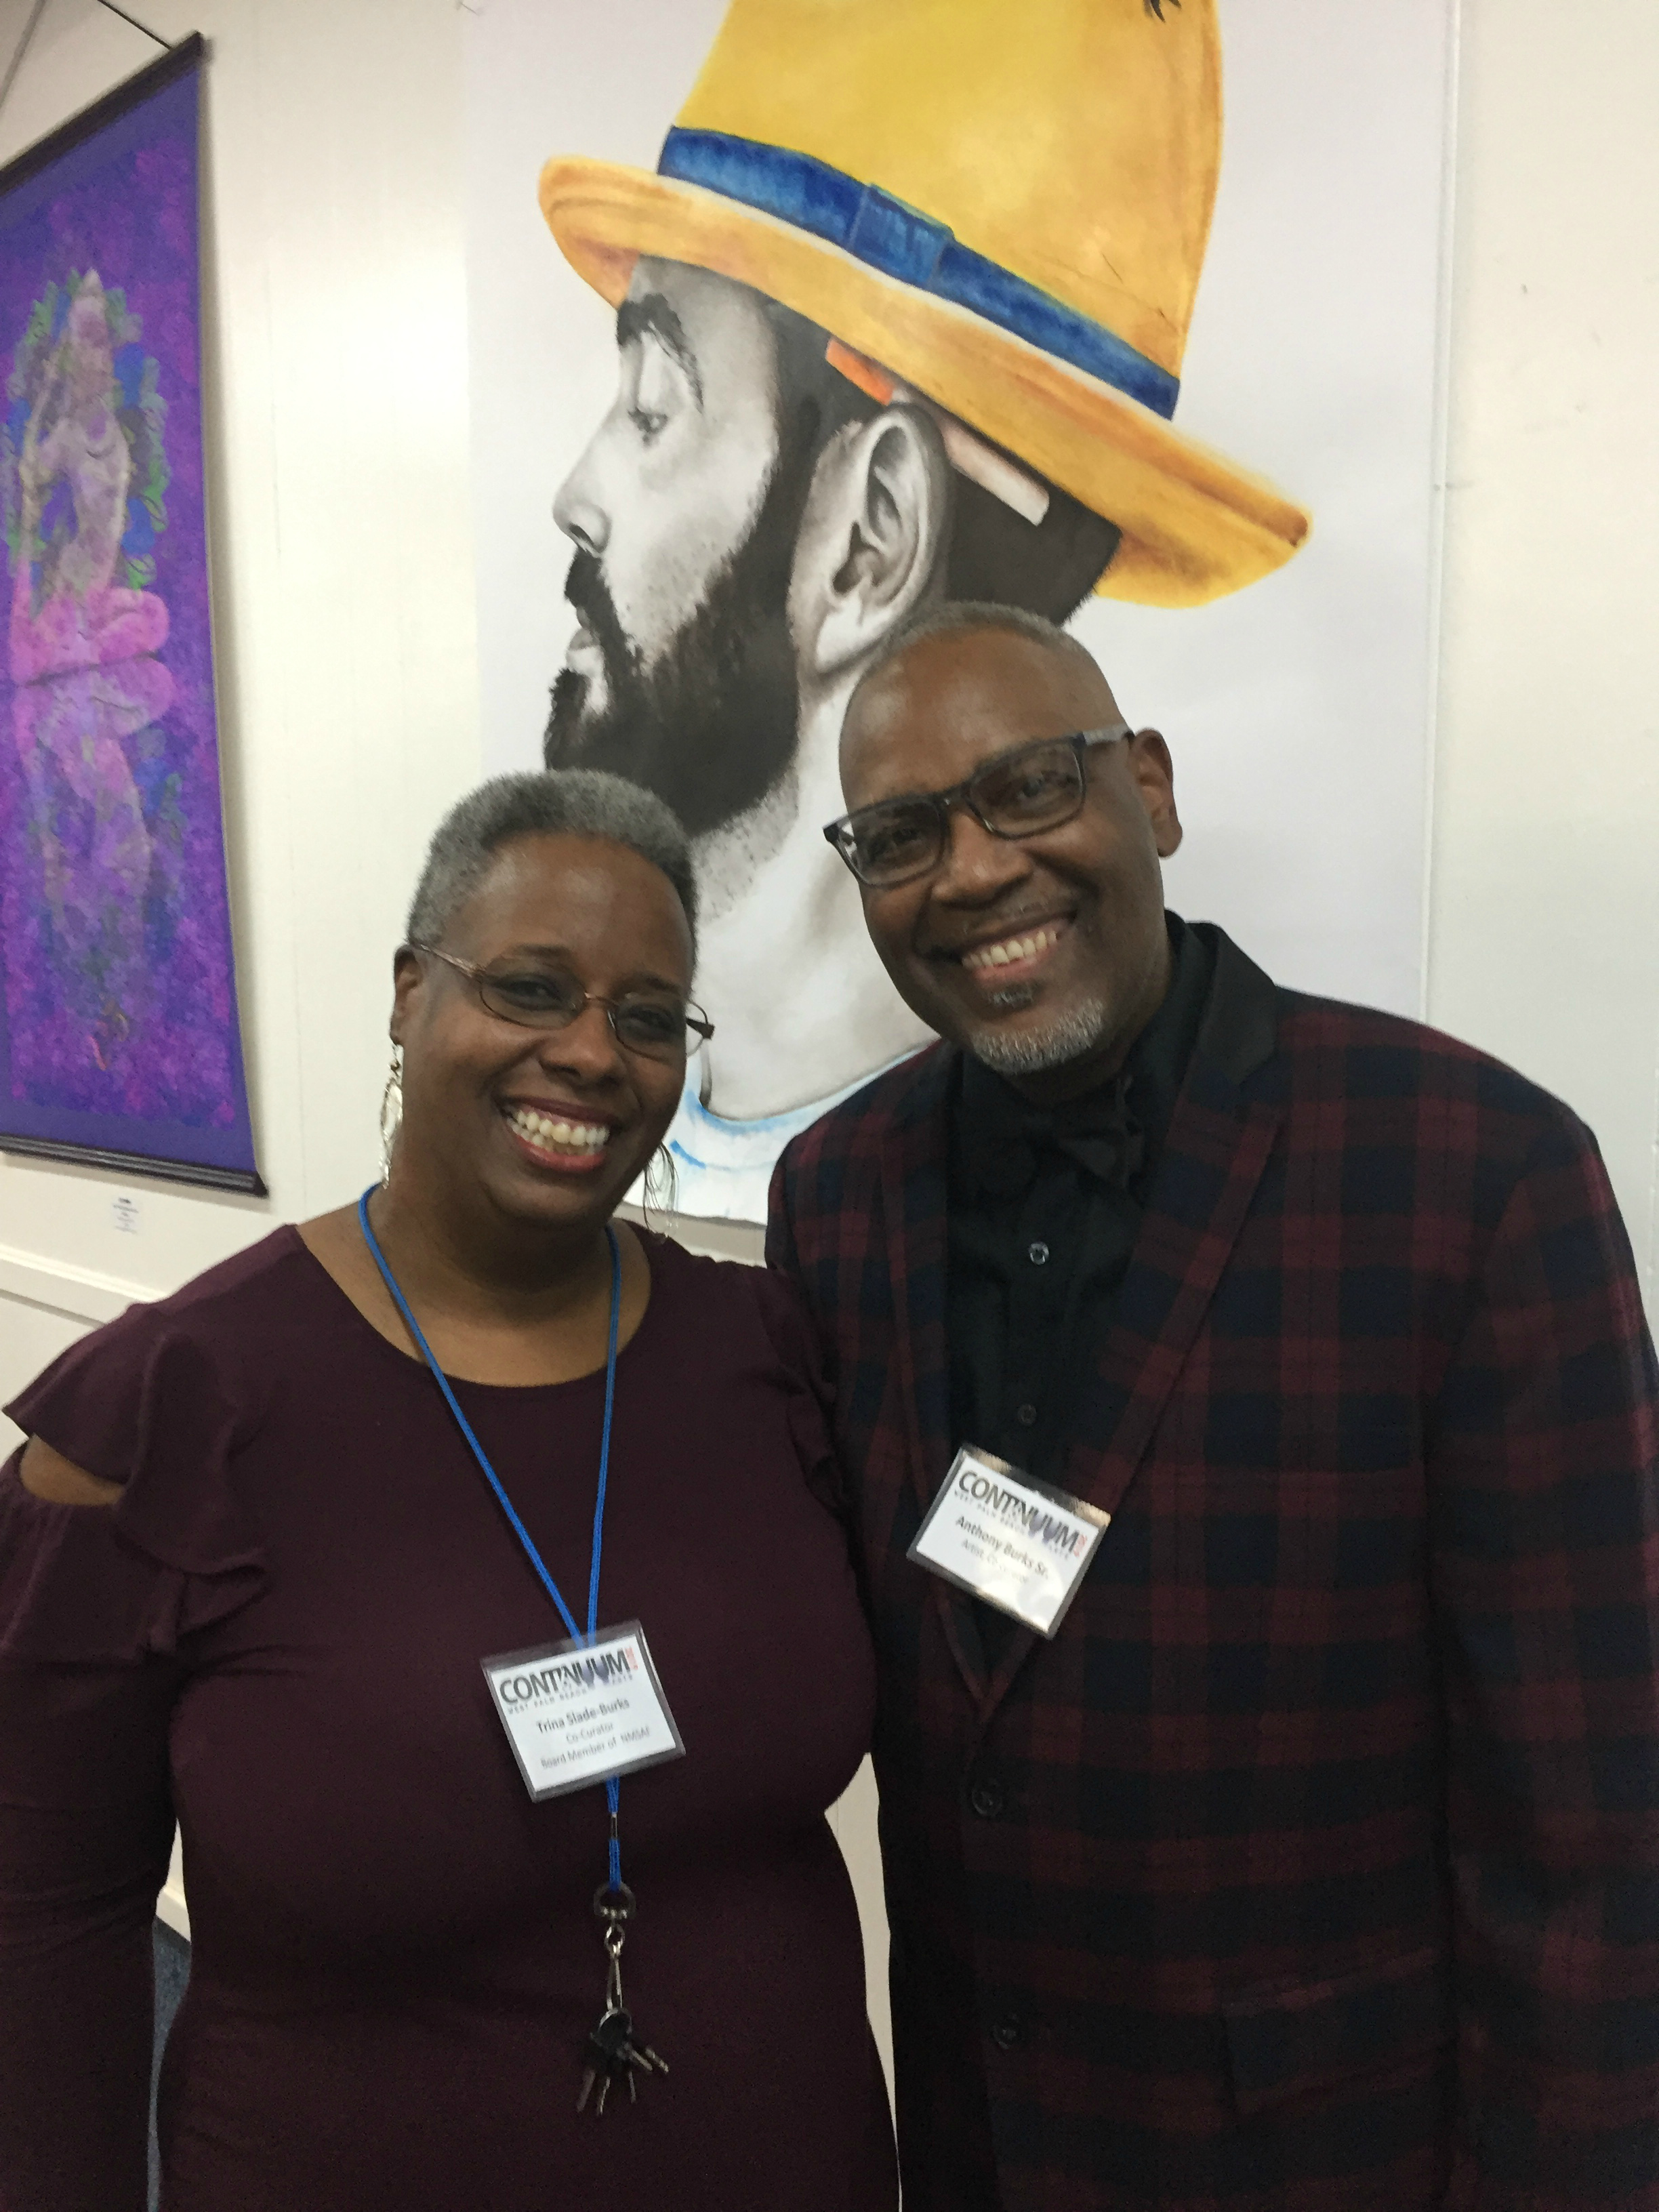 The Burks, Trina and Anthony- they want you to learn more about the No More Starving Artists Foundation, https://www.nmsaf.org/p/board-members.html